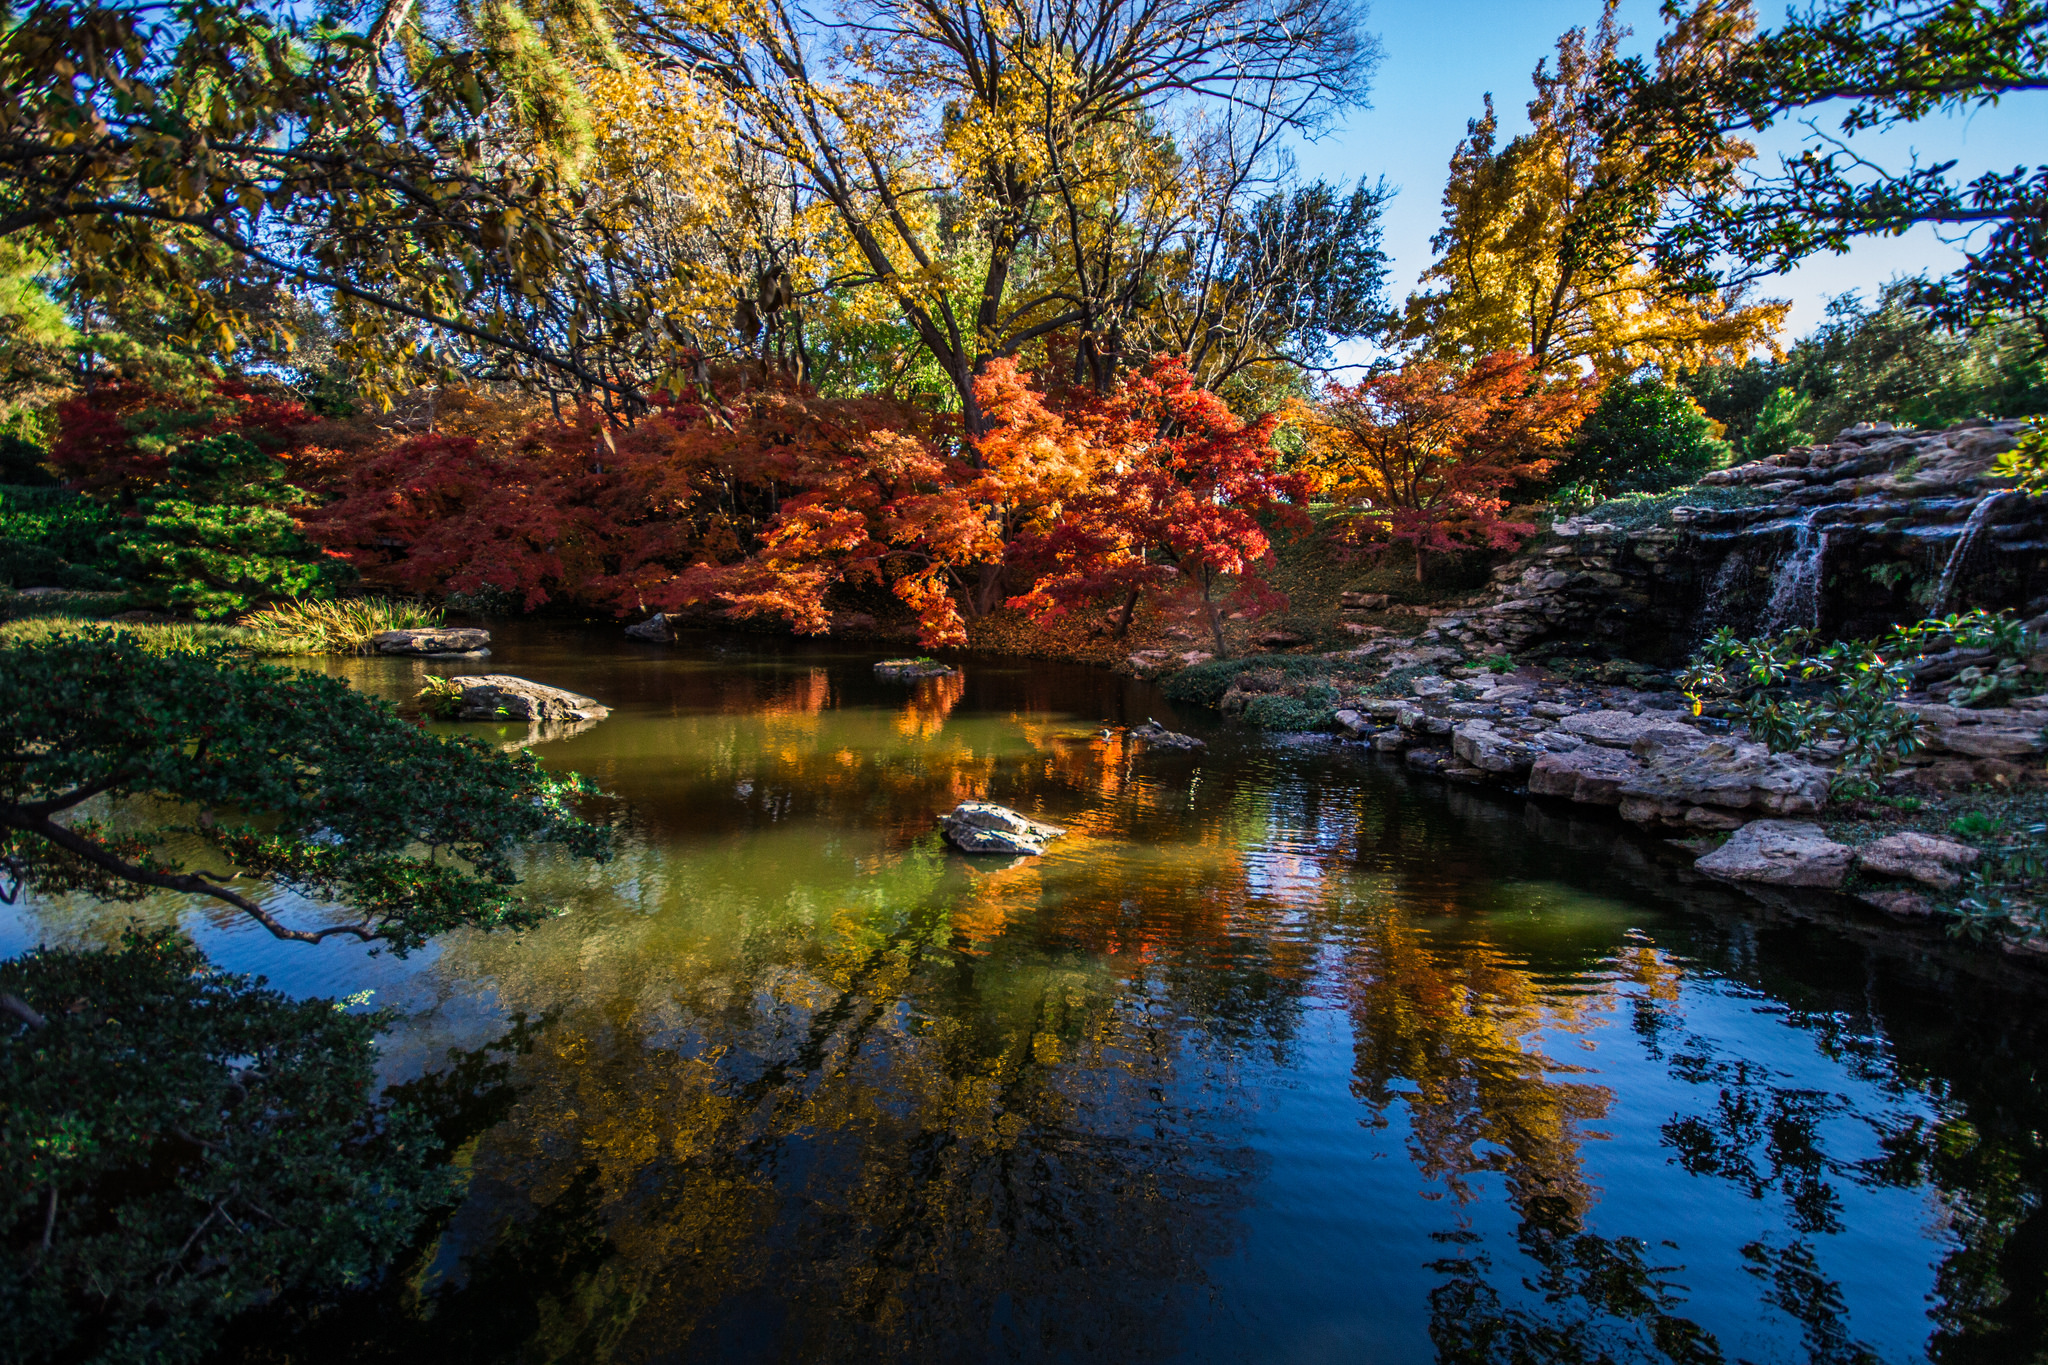 Fort Worth Botanic Garden - Botanic Garden in Fort Worth - Thousand ...